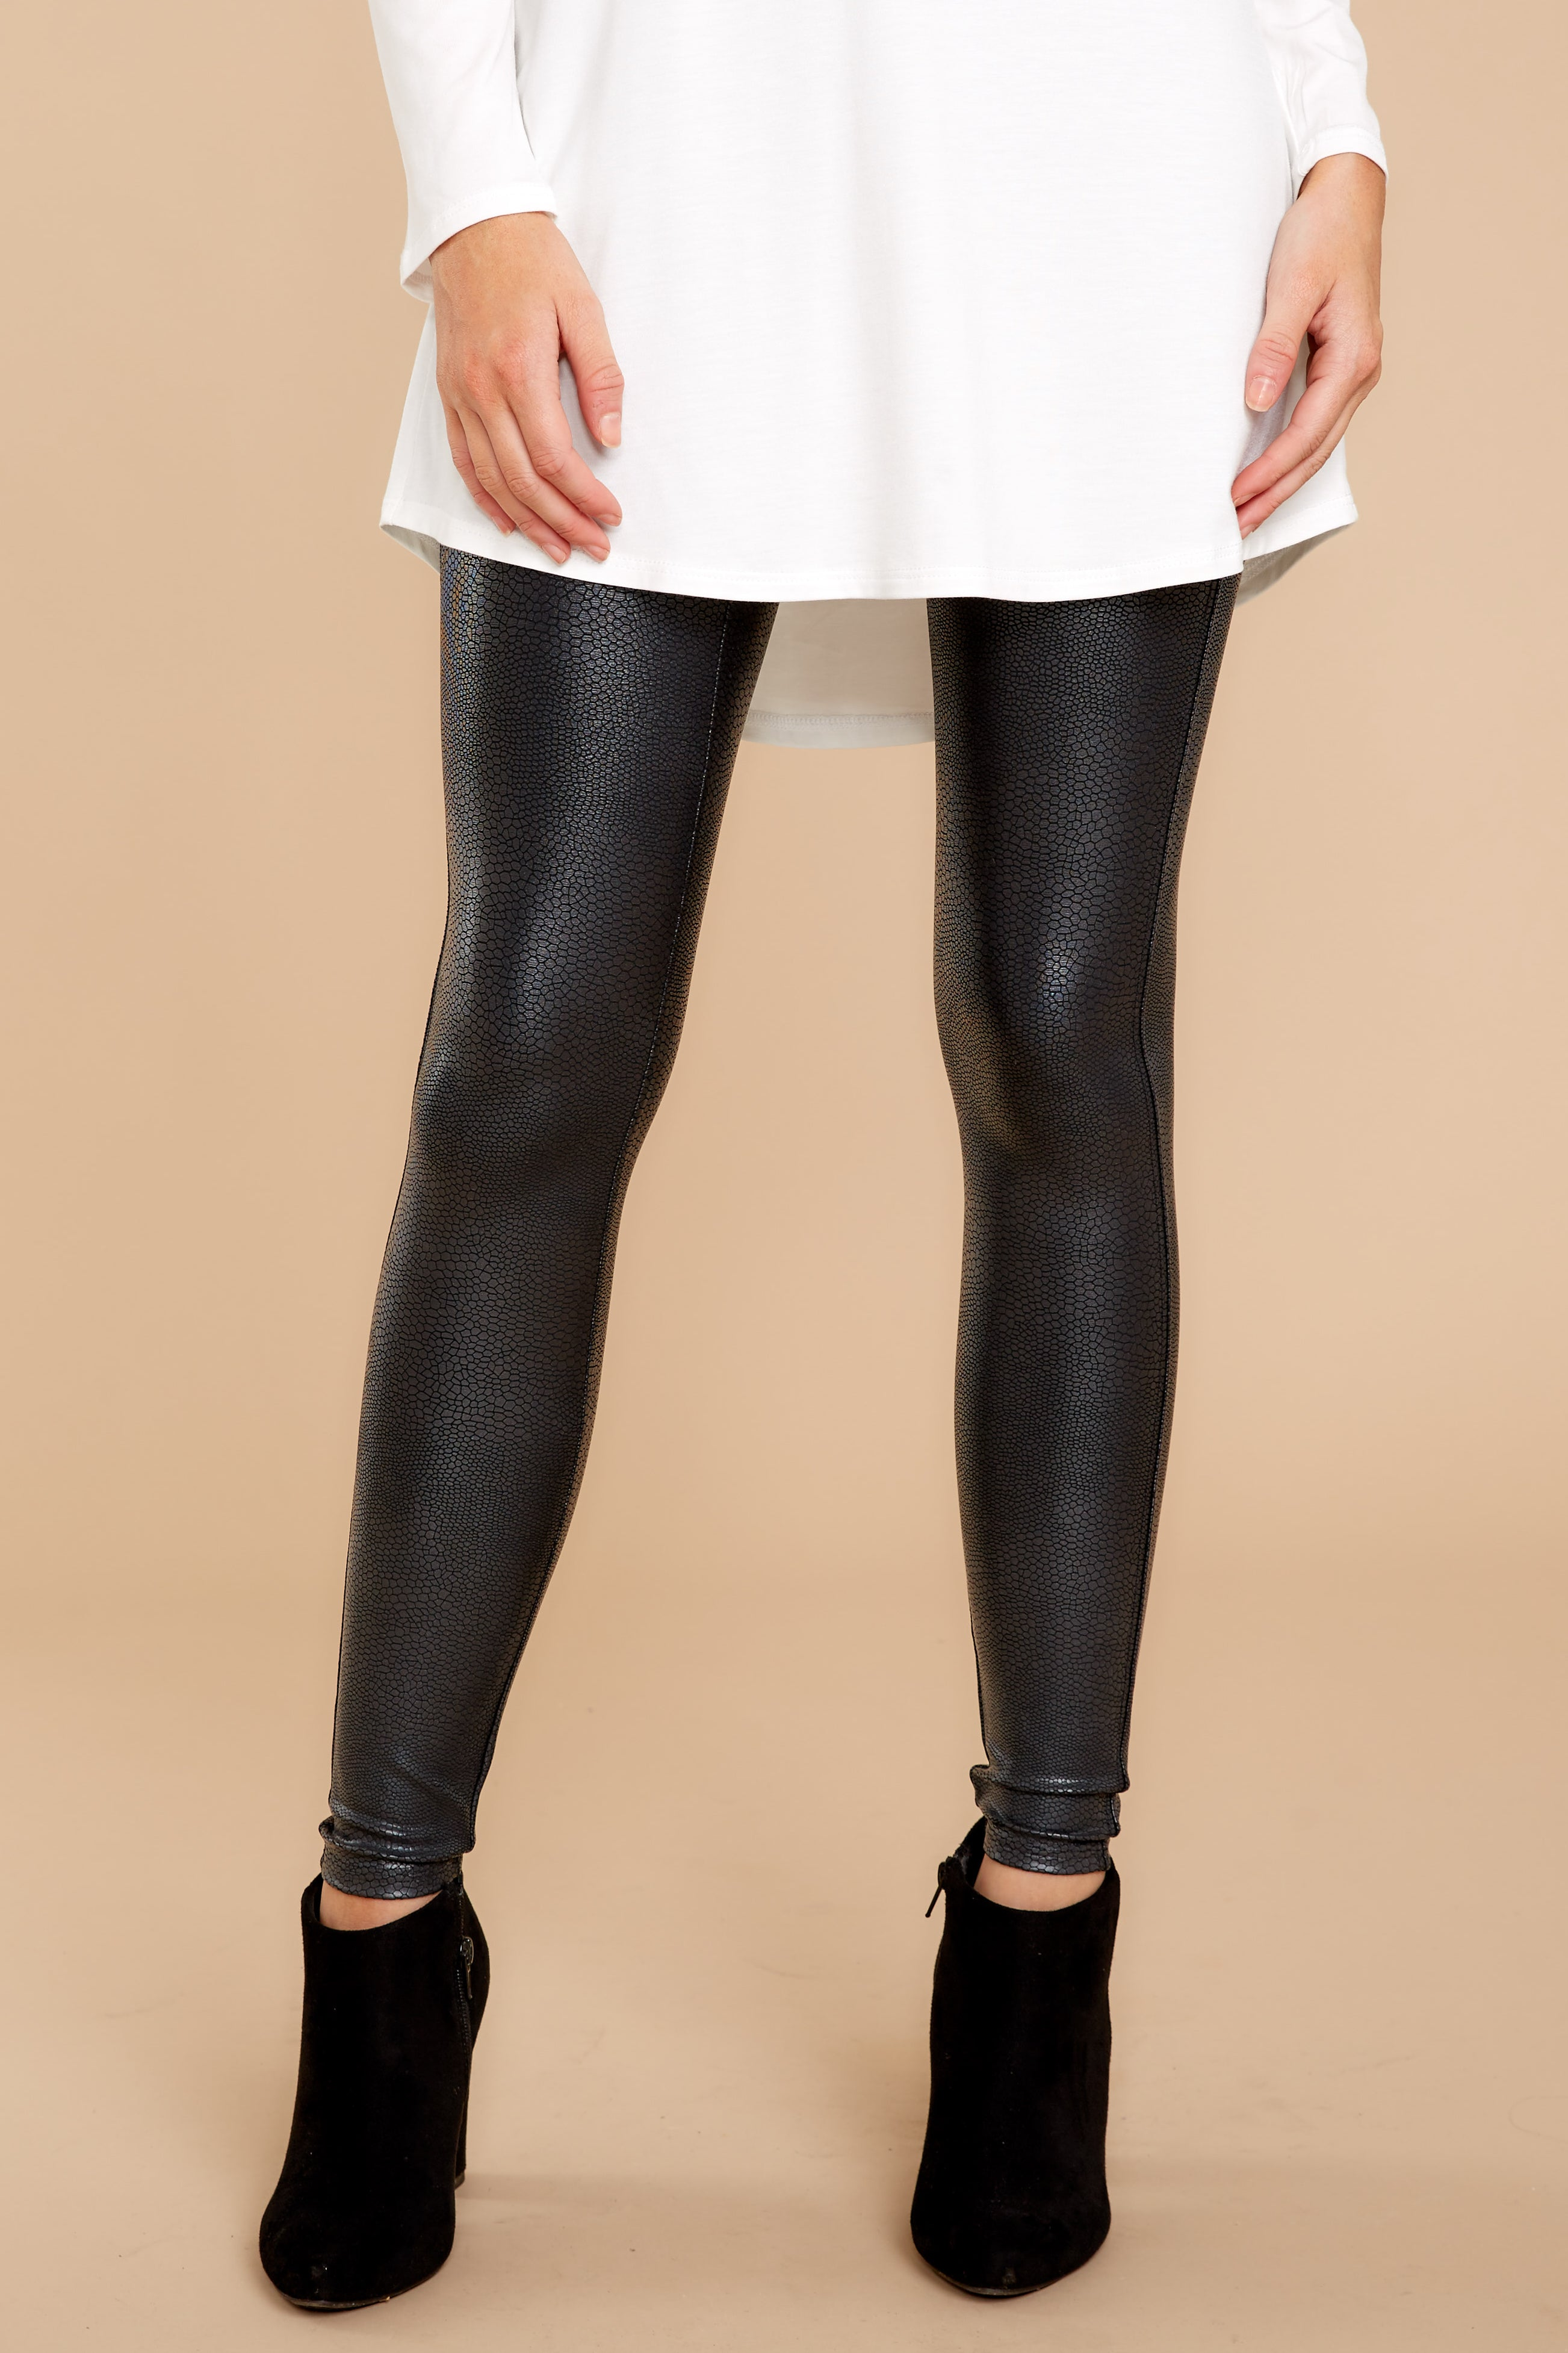 bc02f34d0e1ec Spanx Faux Leather Pebbled Leggings - Spanx Leggings - Leggings ...